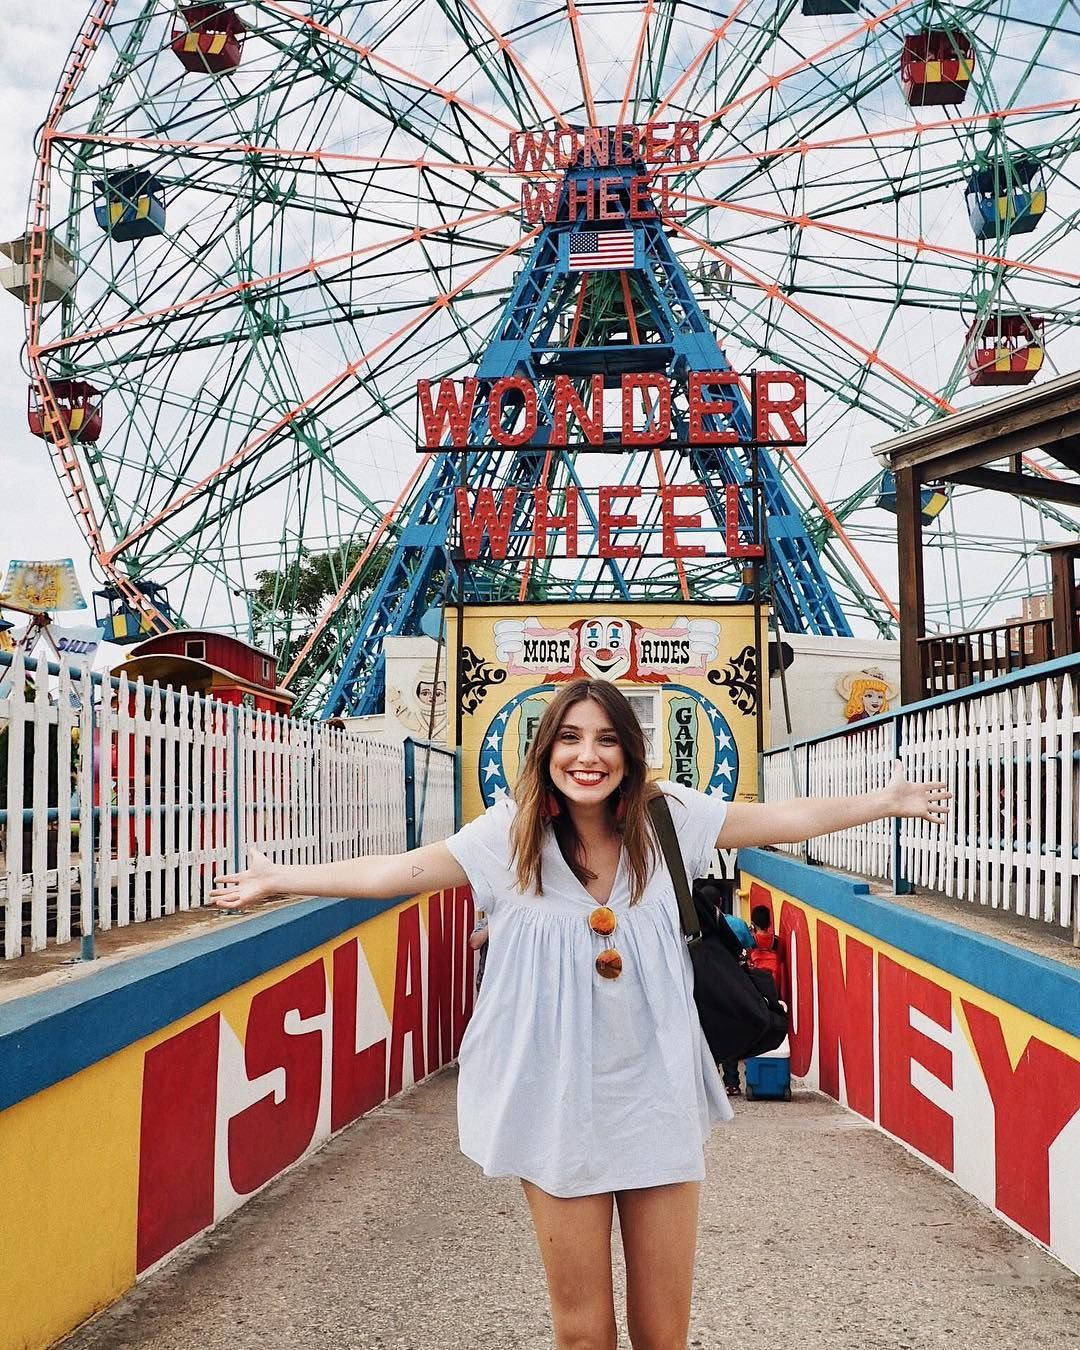 14 Cool Places To Take Pictures In Nyc That Our Community Loves College Fashionista Nyc Pics New York Pictures Nyc Instagram